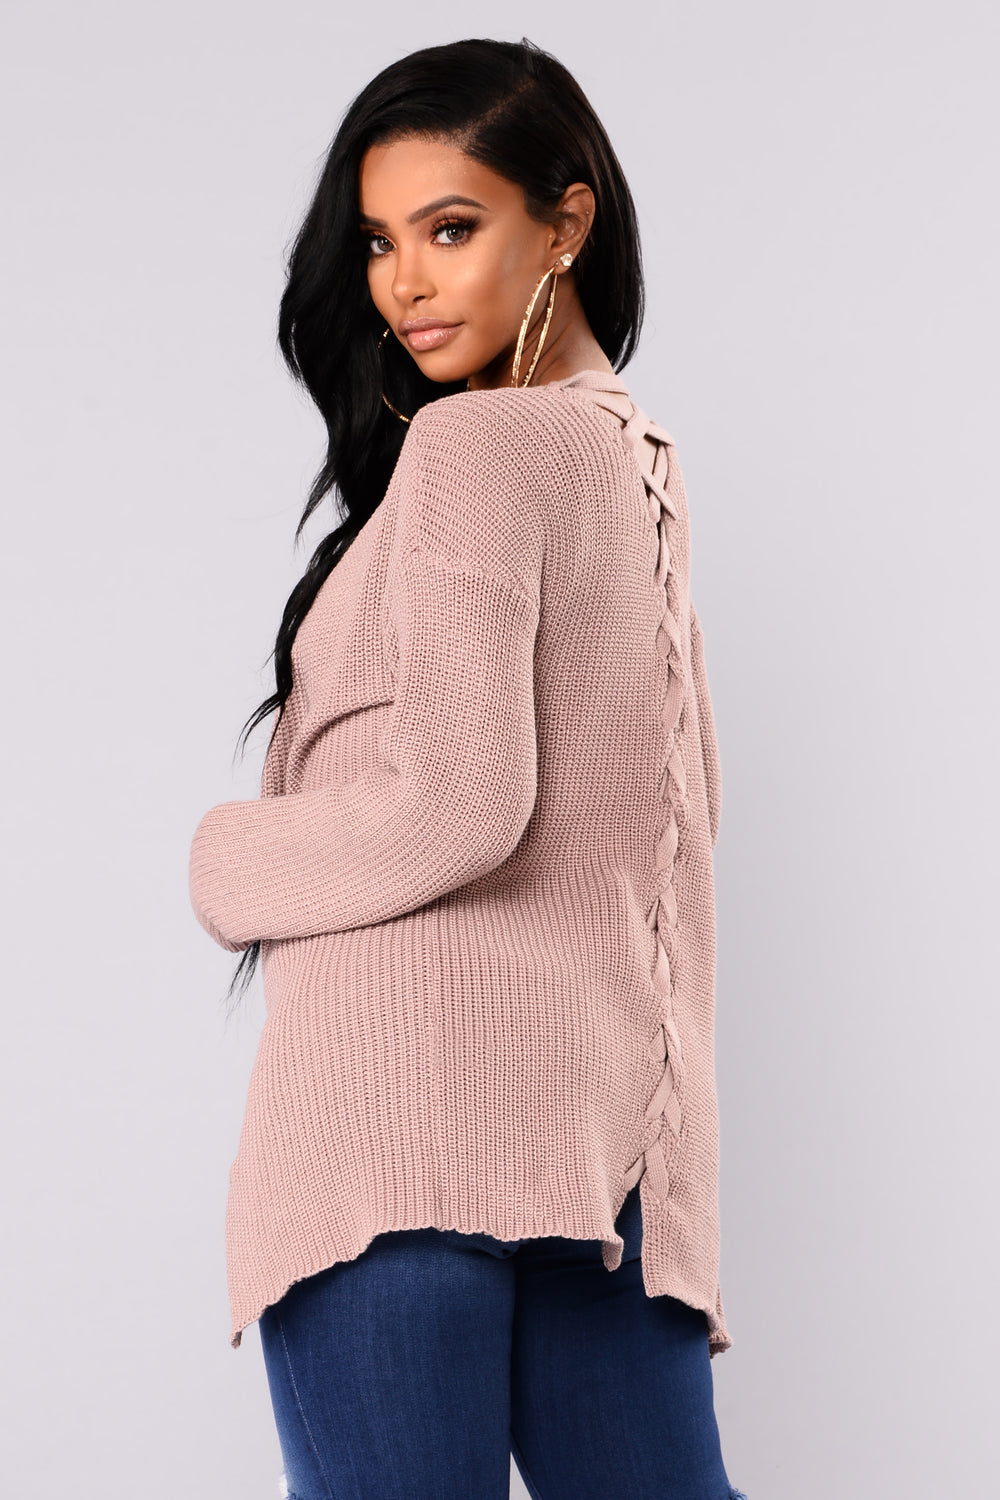 Aubree Lace Up Cardigan - Dusty Pink